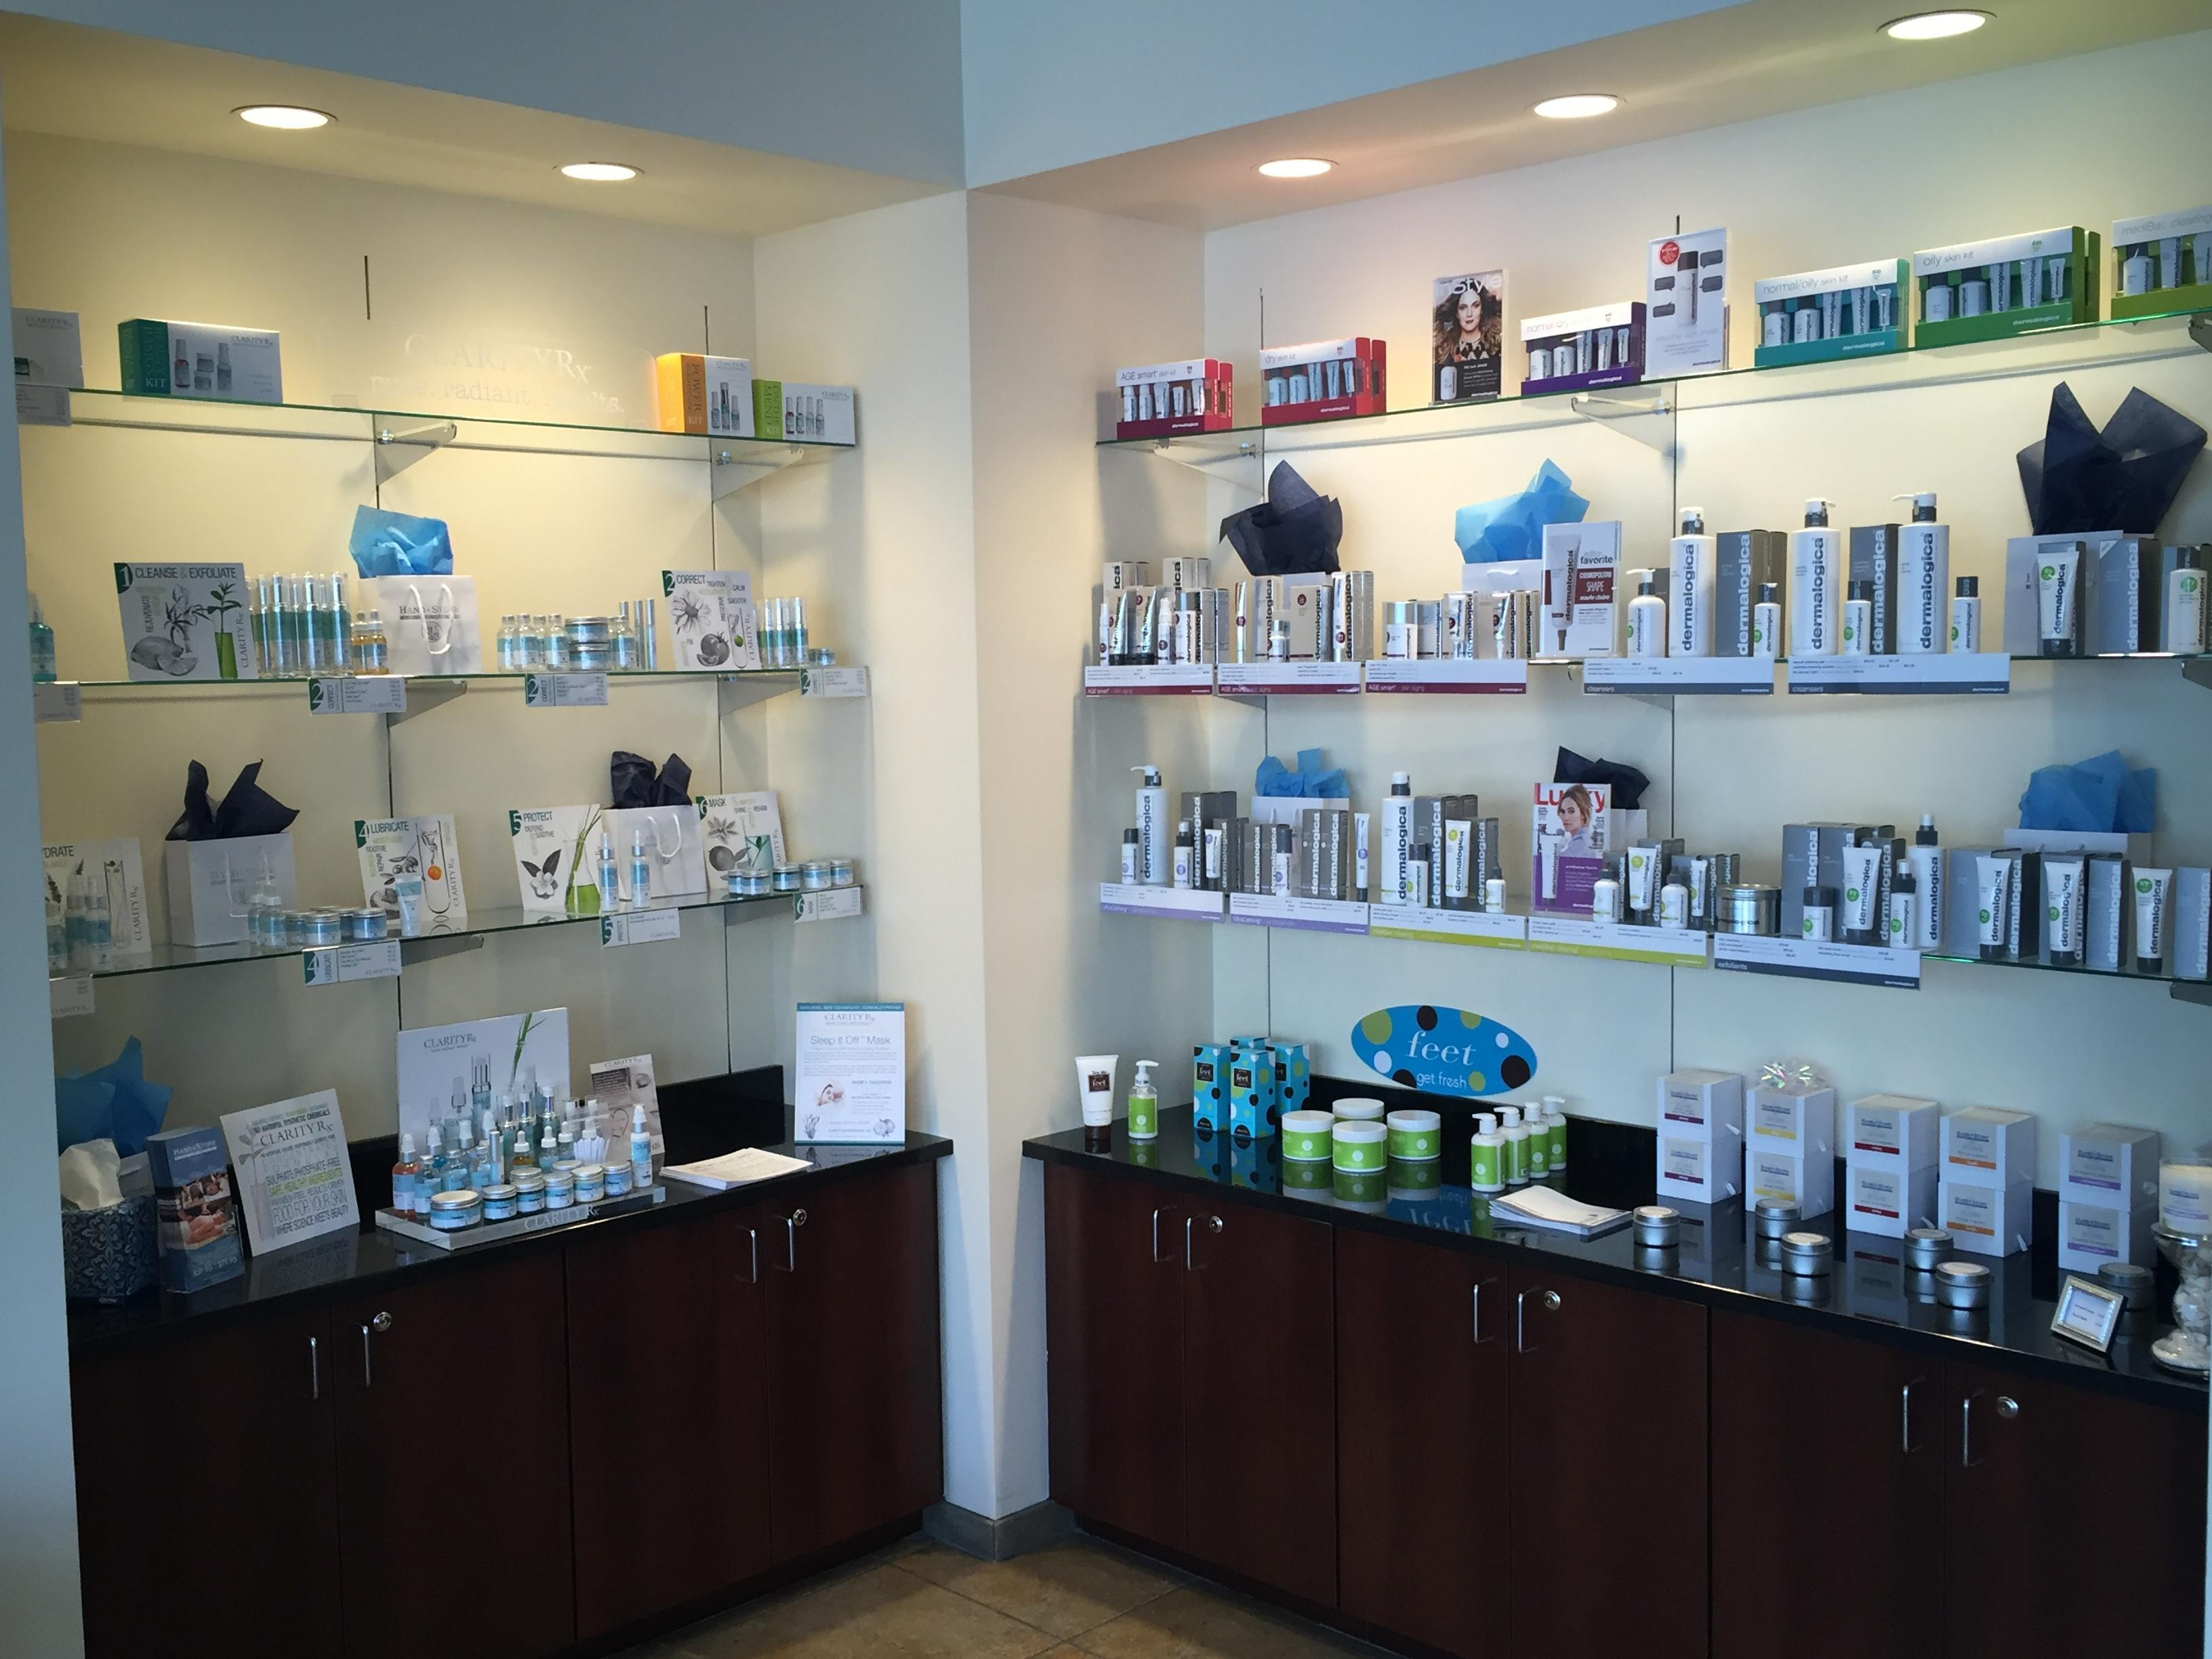 Our great skin care products from Clarity RX and Dermalogica